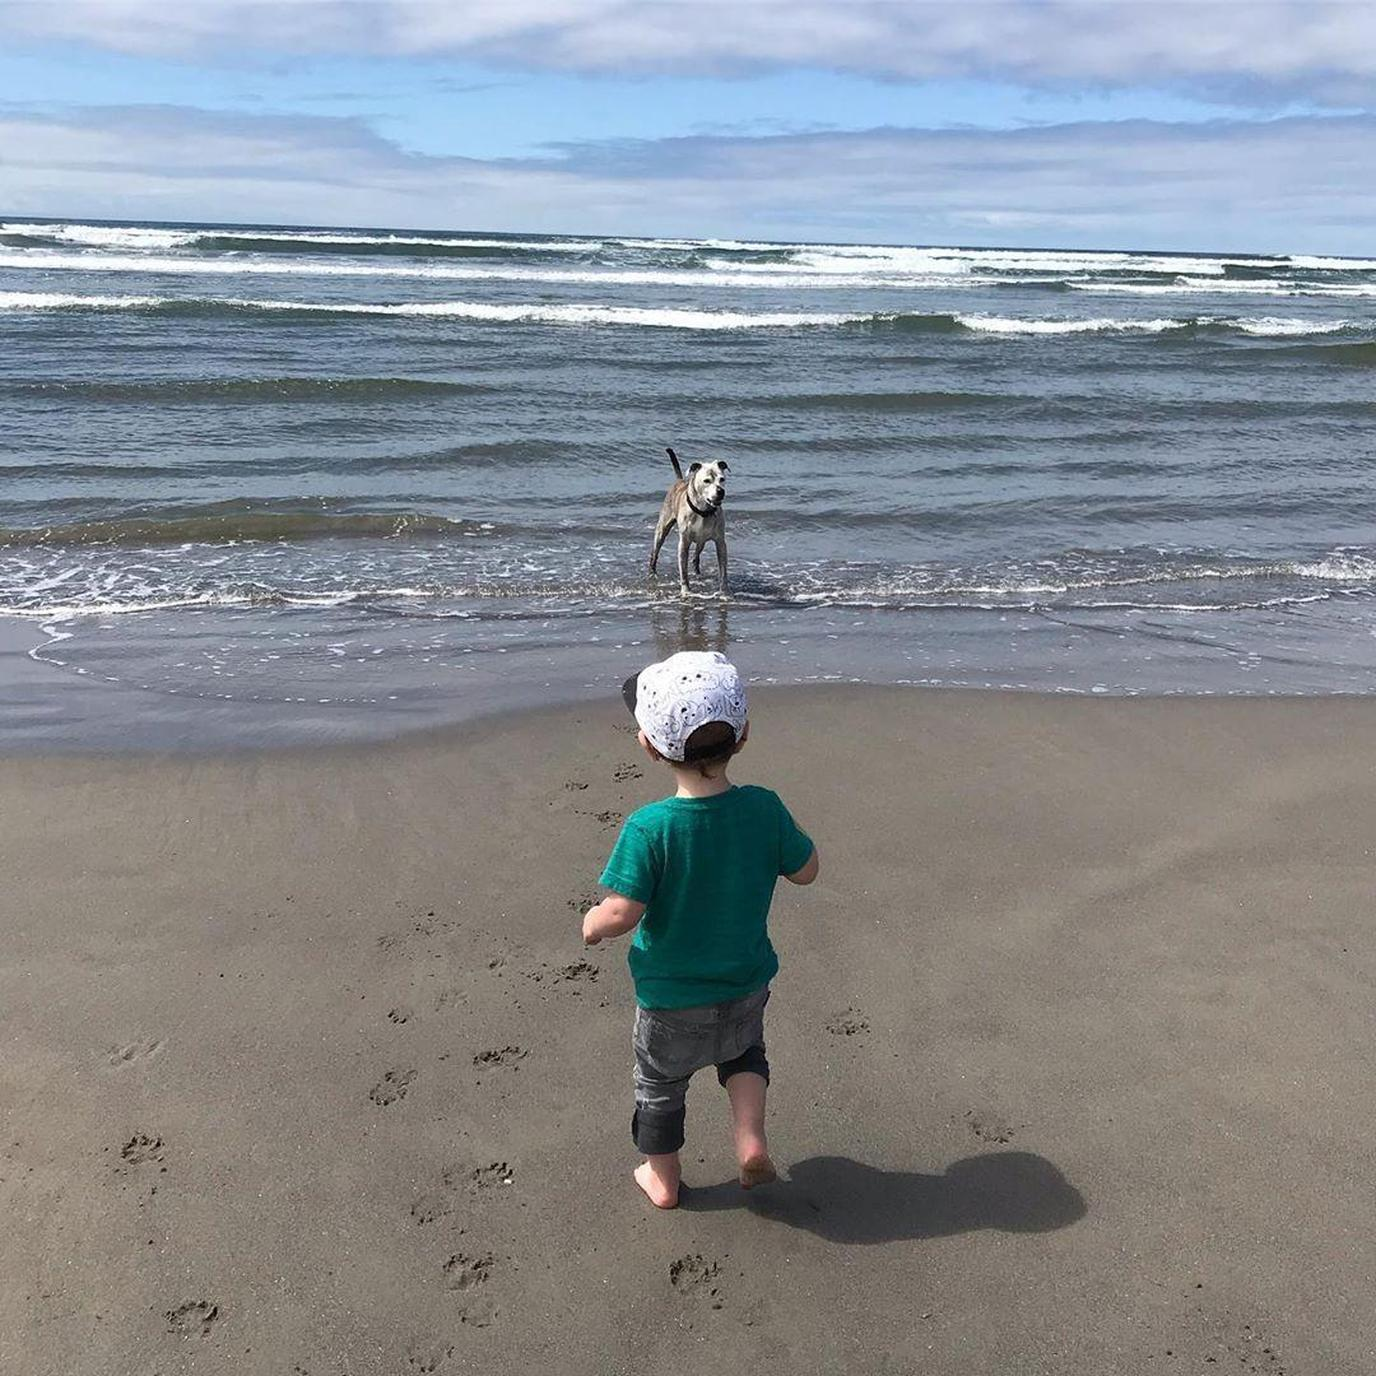 A Toddler and Dog Play on a Pet-Friendly Beach in Seaside.